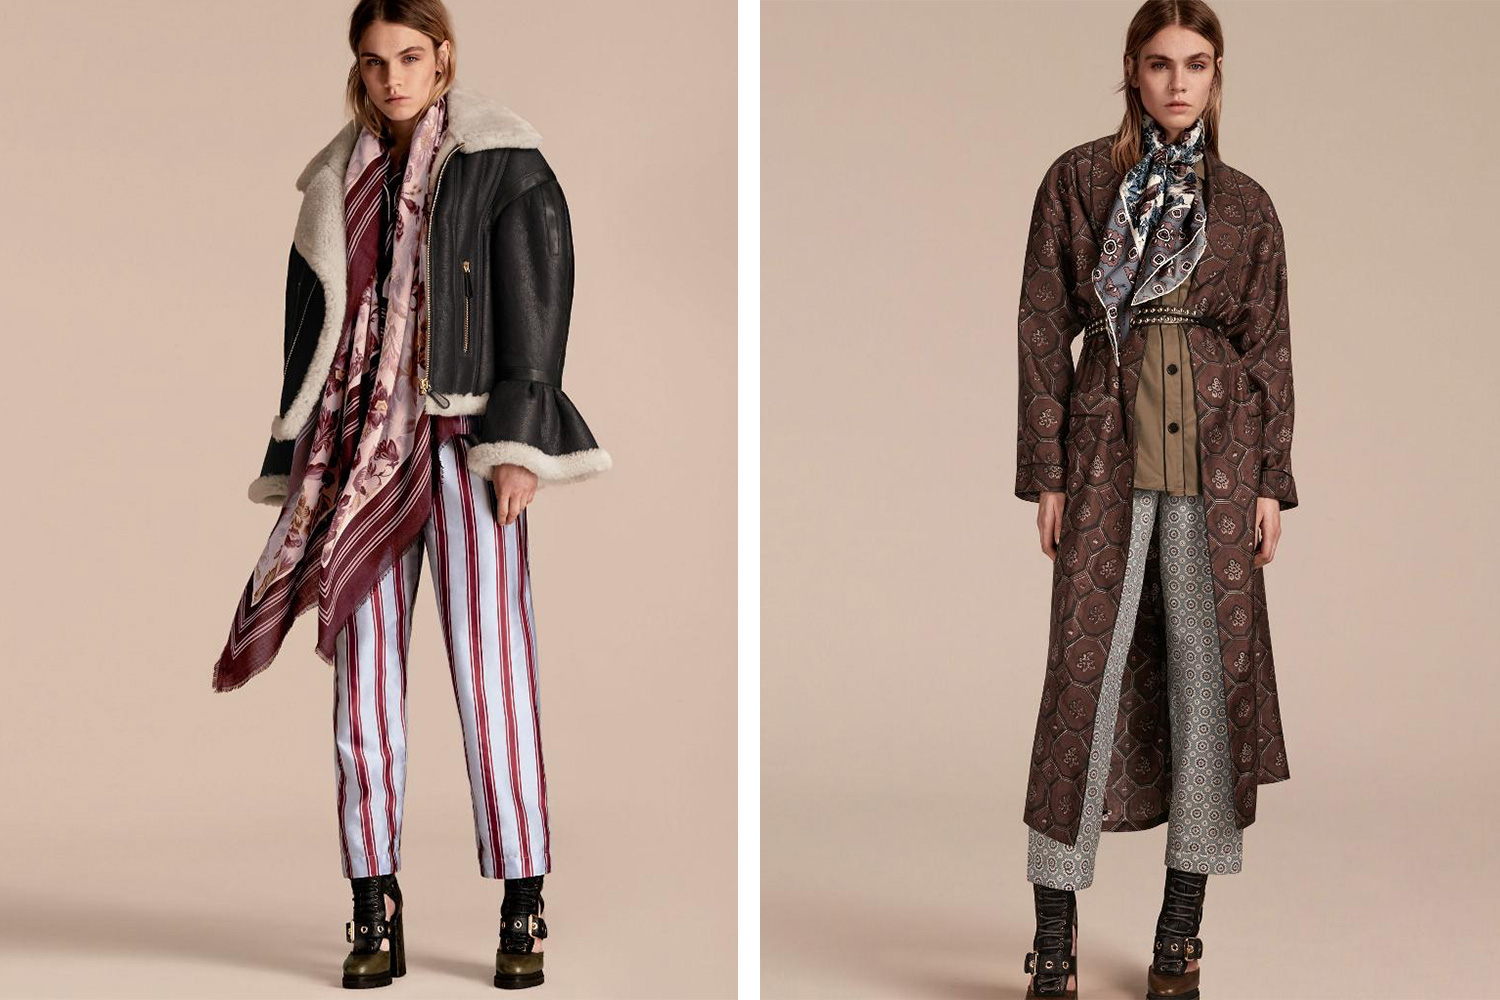 Styled by Pernilla for Burberry